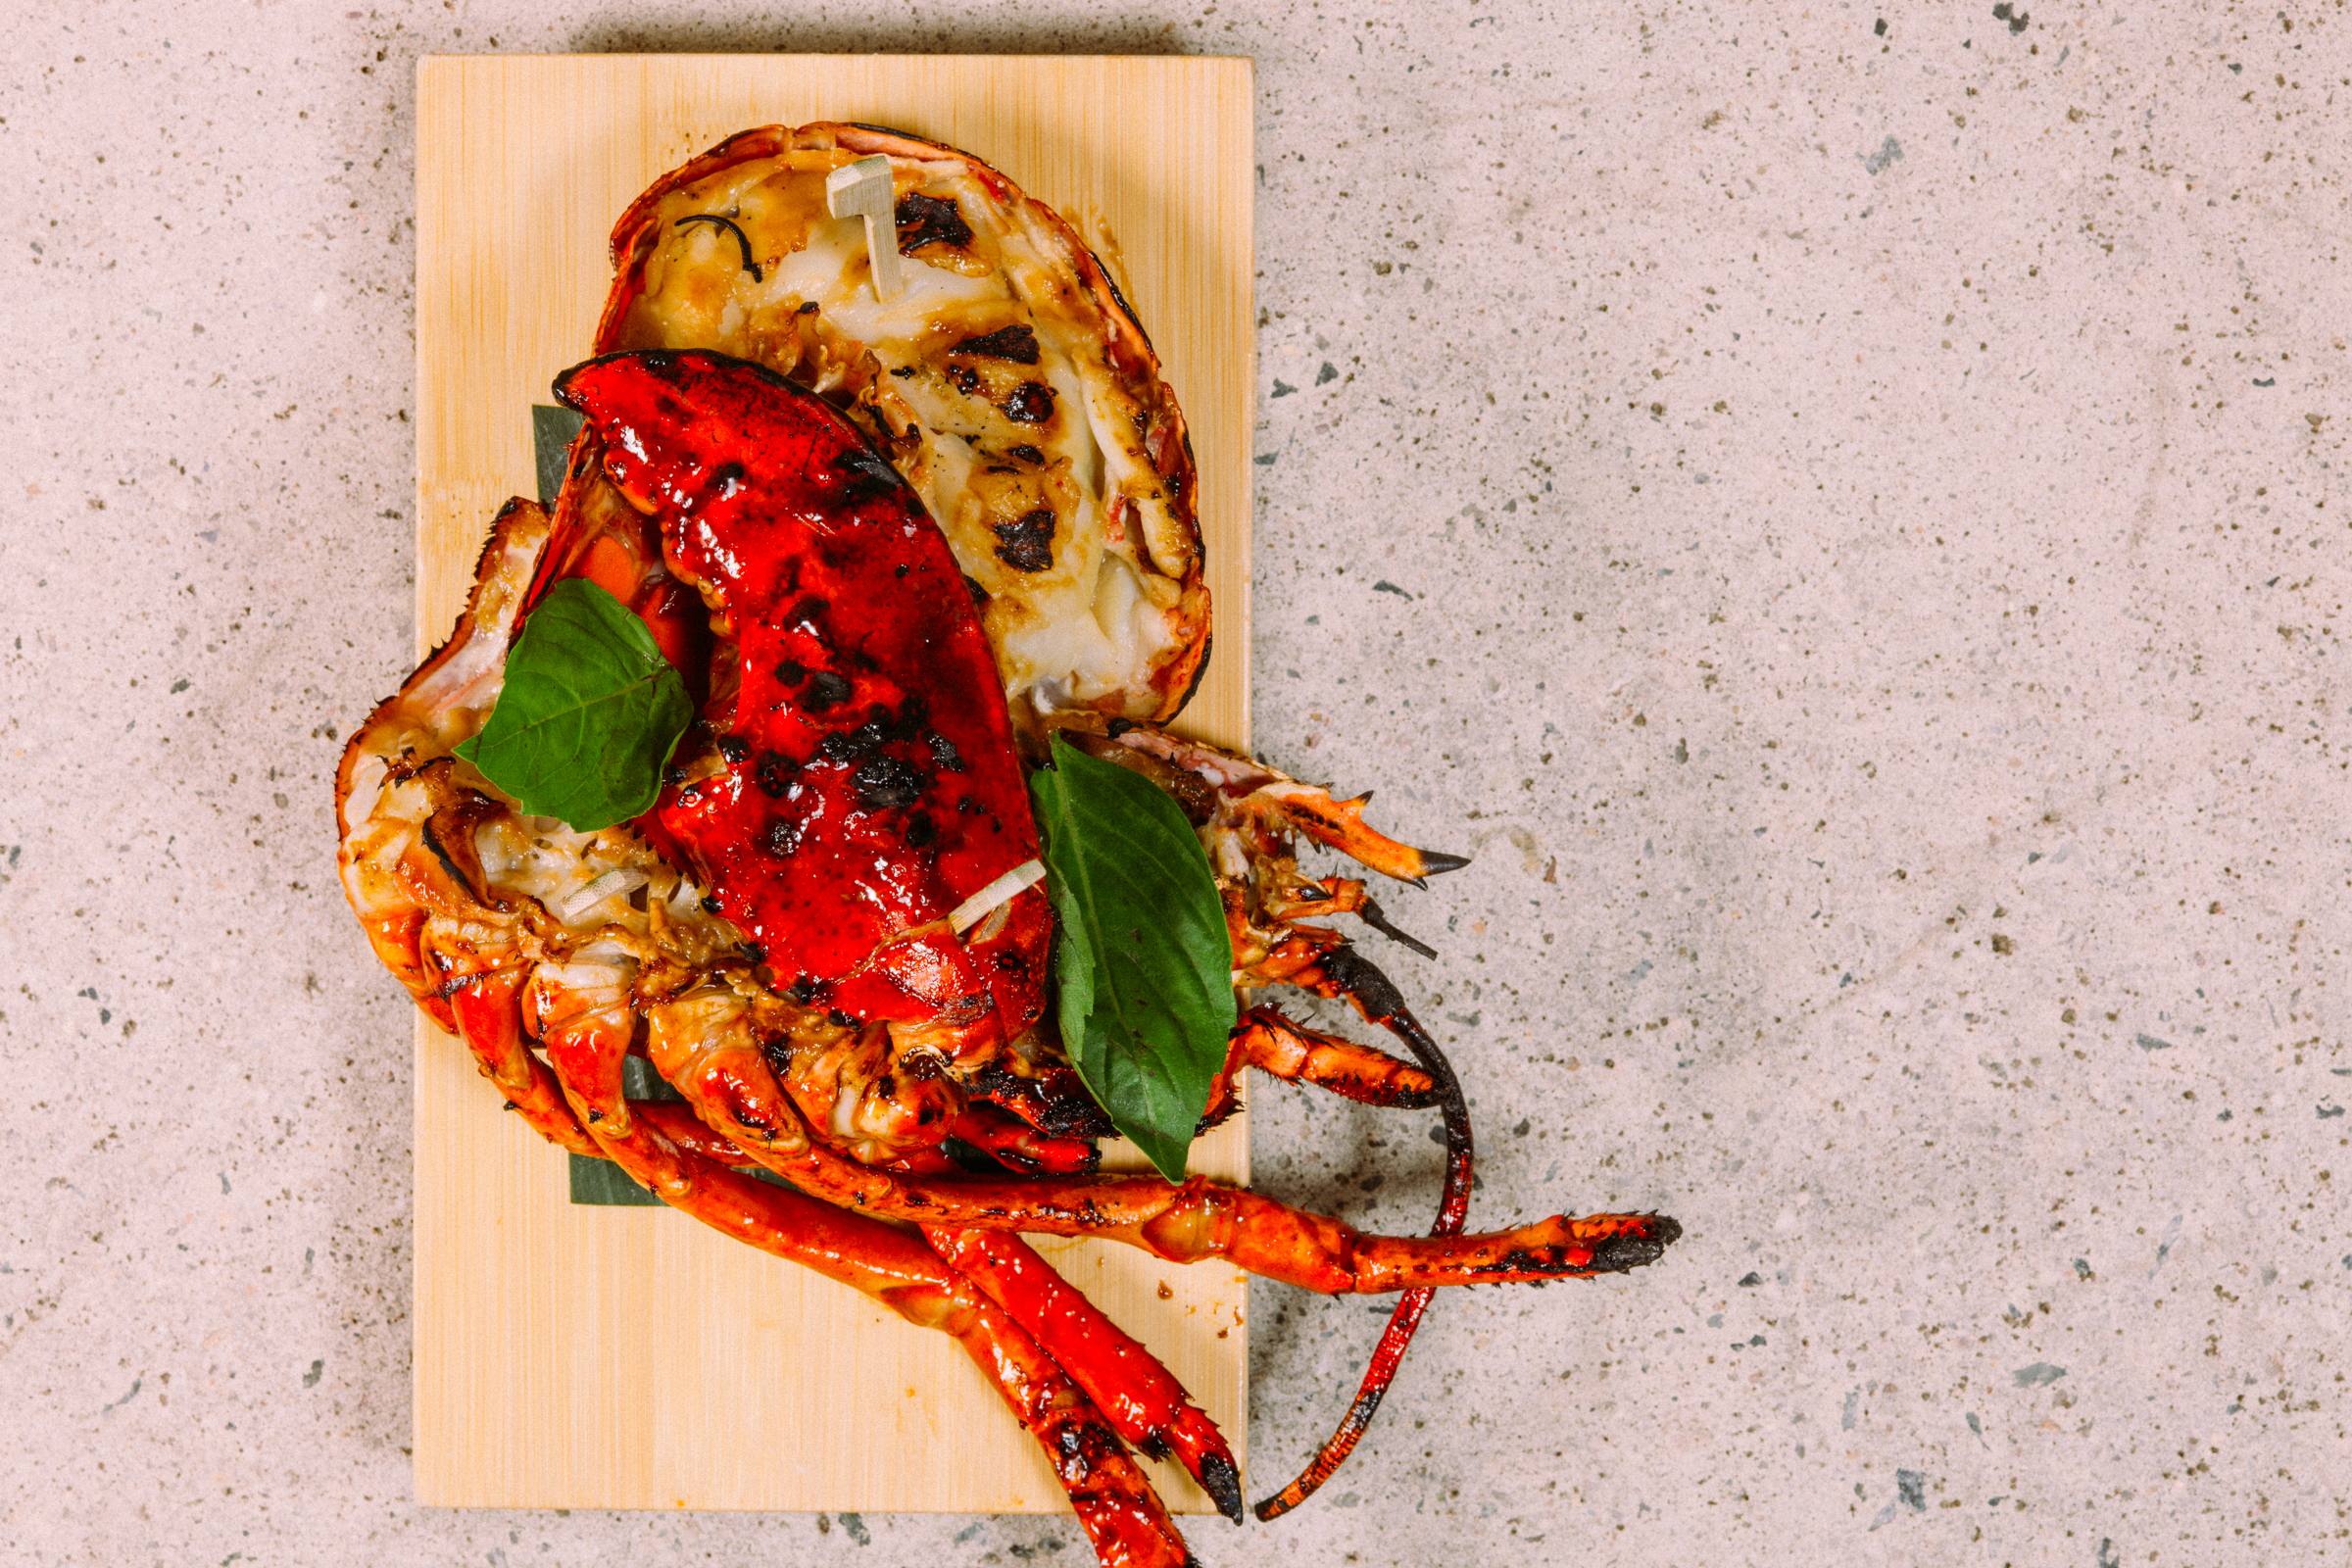 Talde-ALL-GOOD-NYC-Food-Lobster.jpg